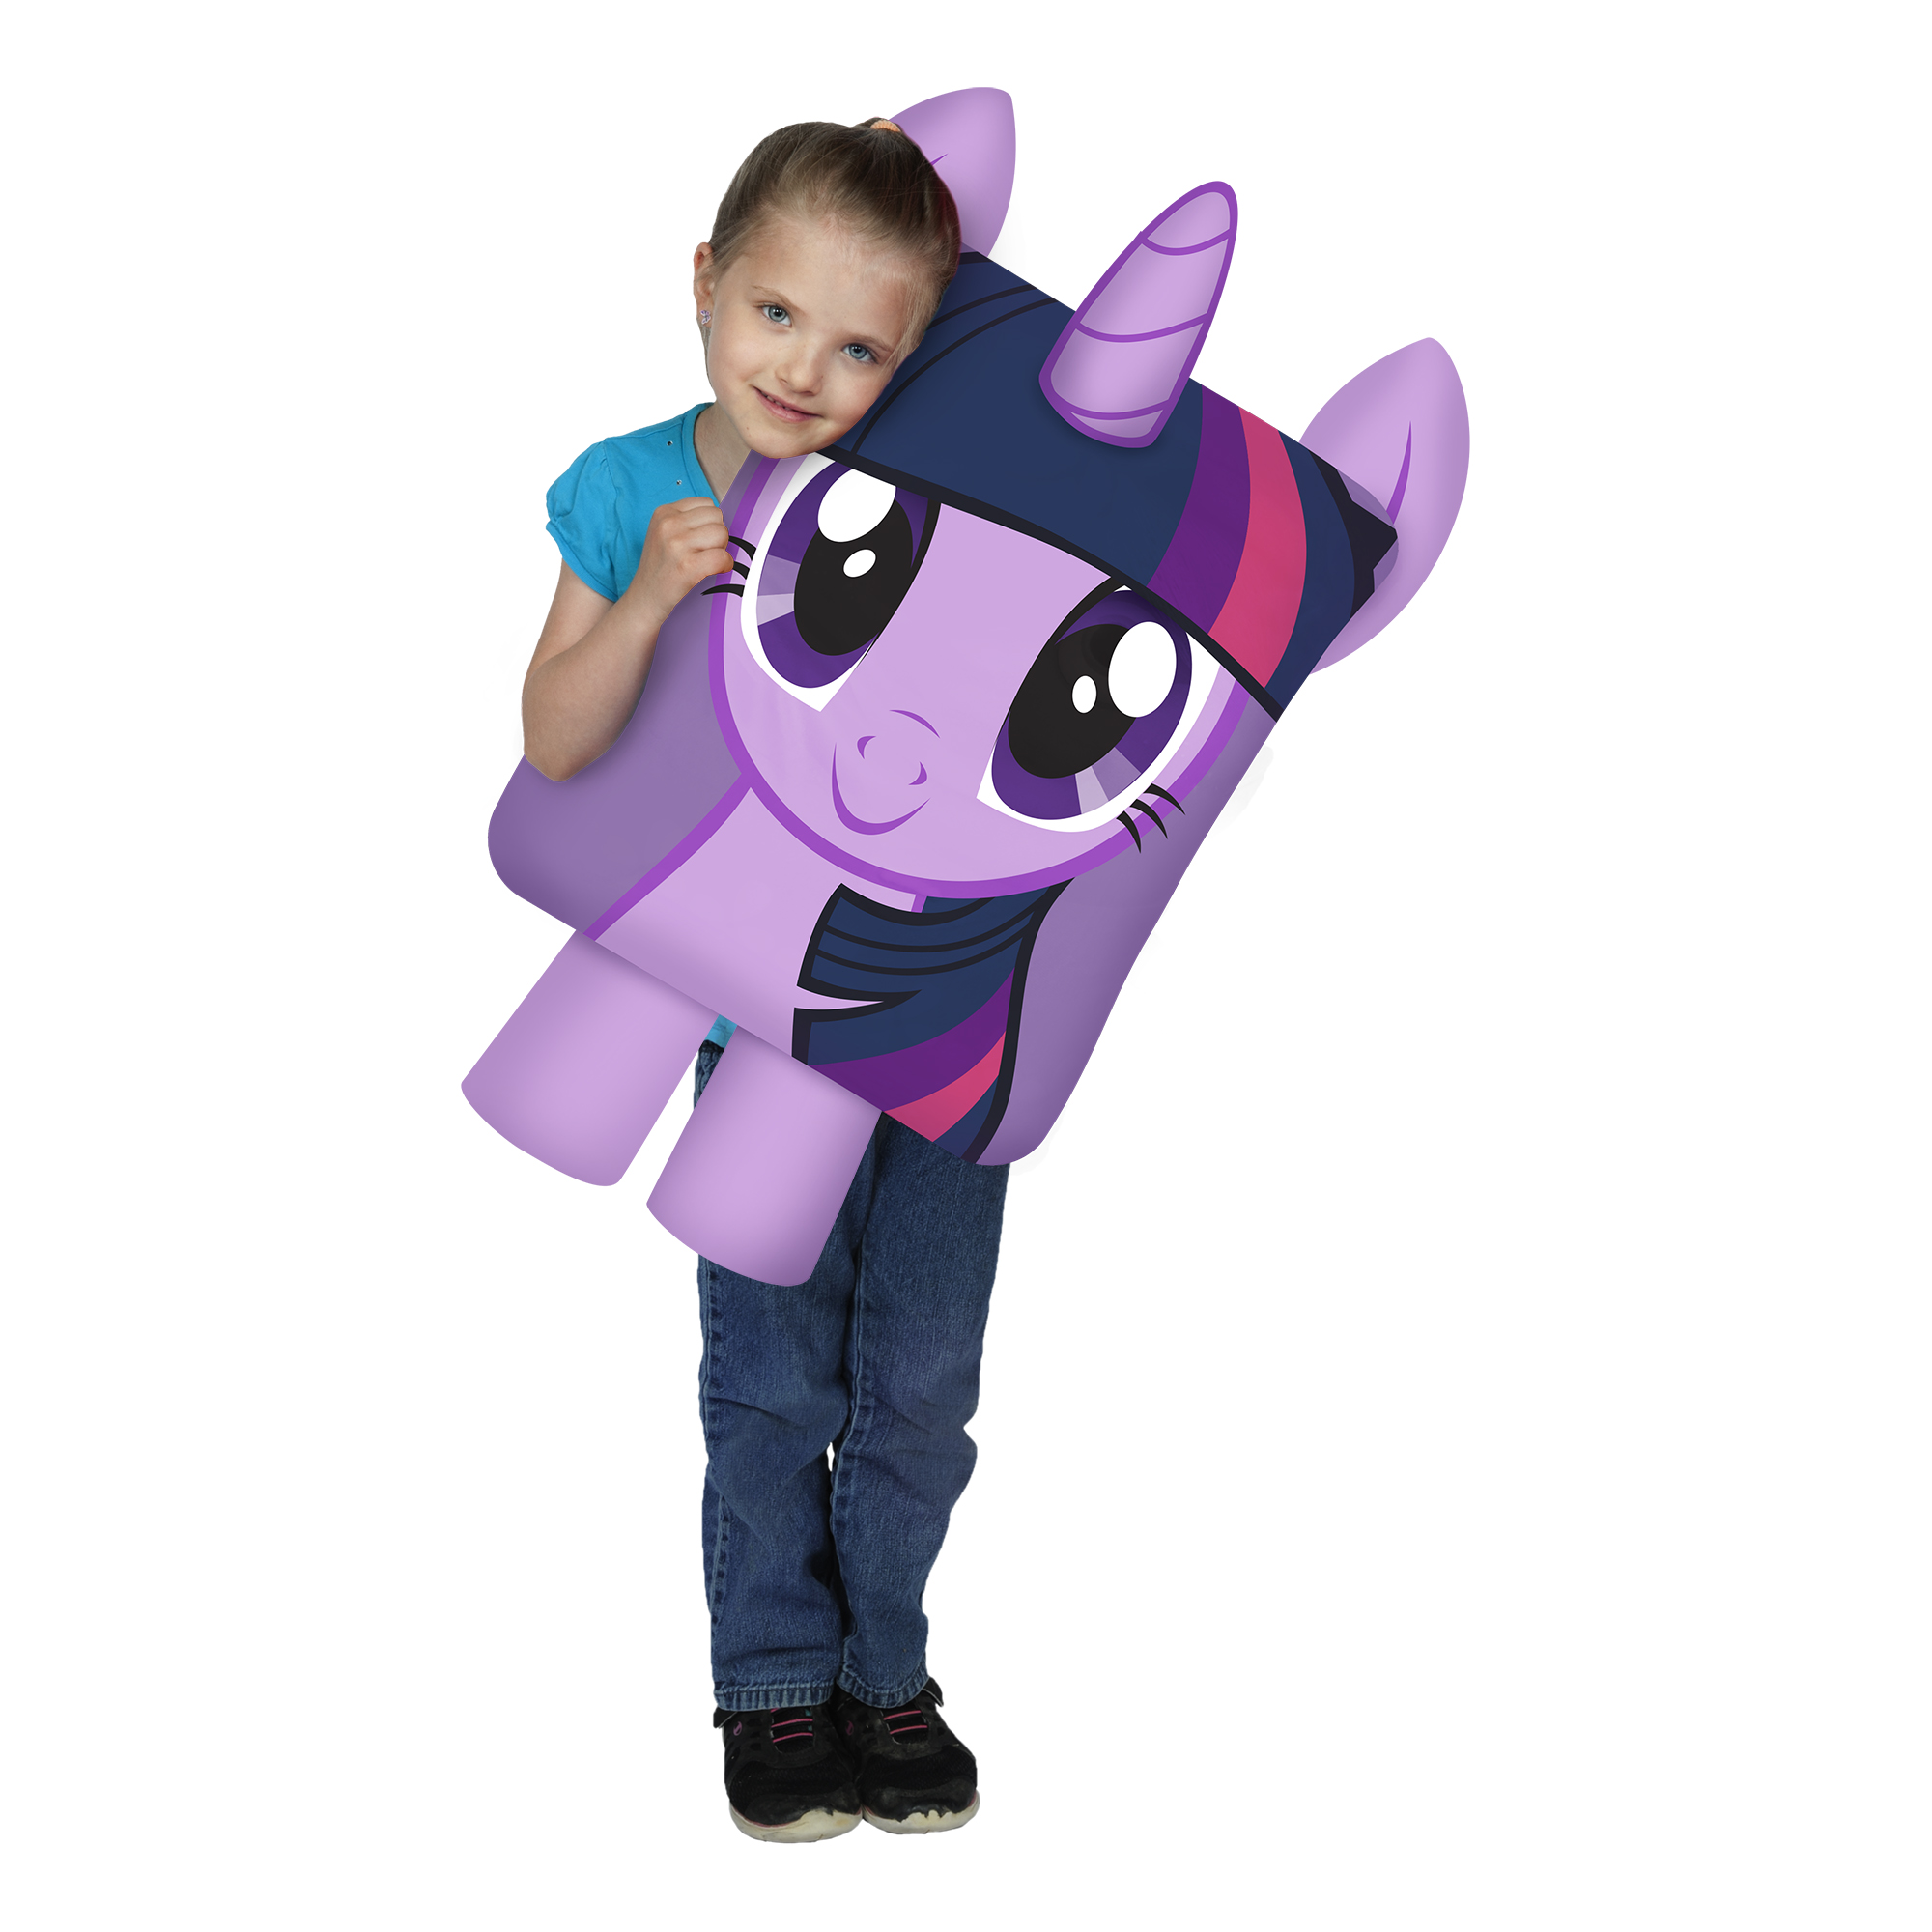 MY LITTLE PONY 'SPARKLE SMACKDOWN' 3D PILLOW BUDDY